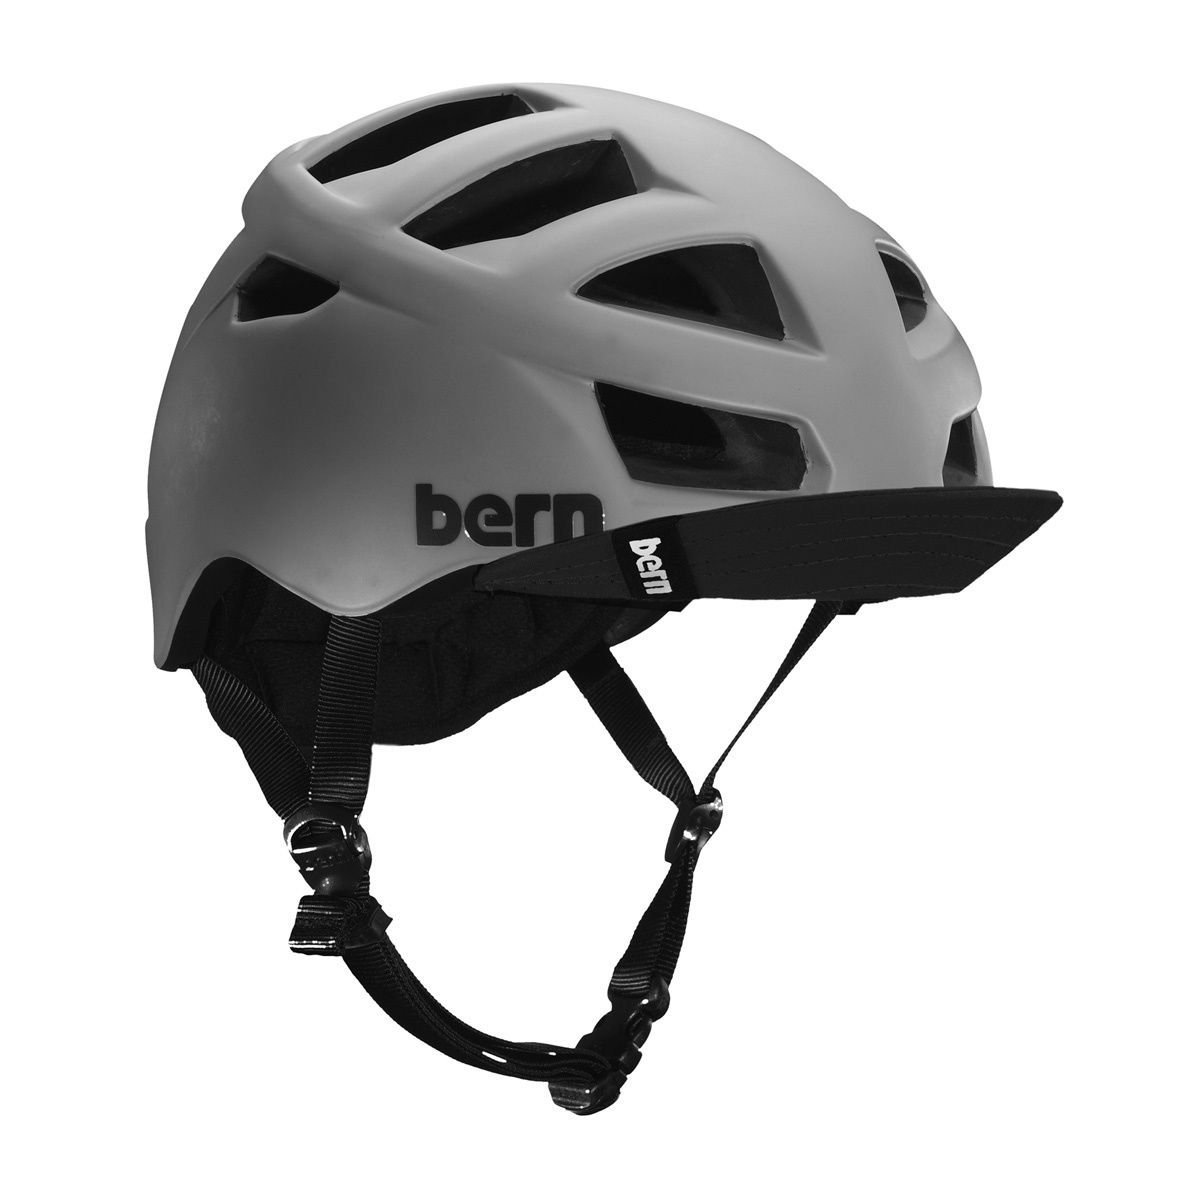 Sizes of Bern Bicycle Helmets